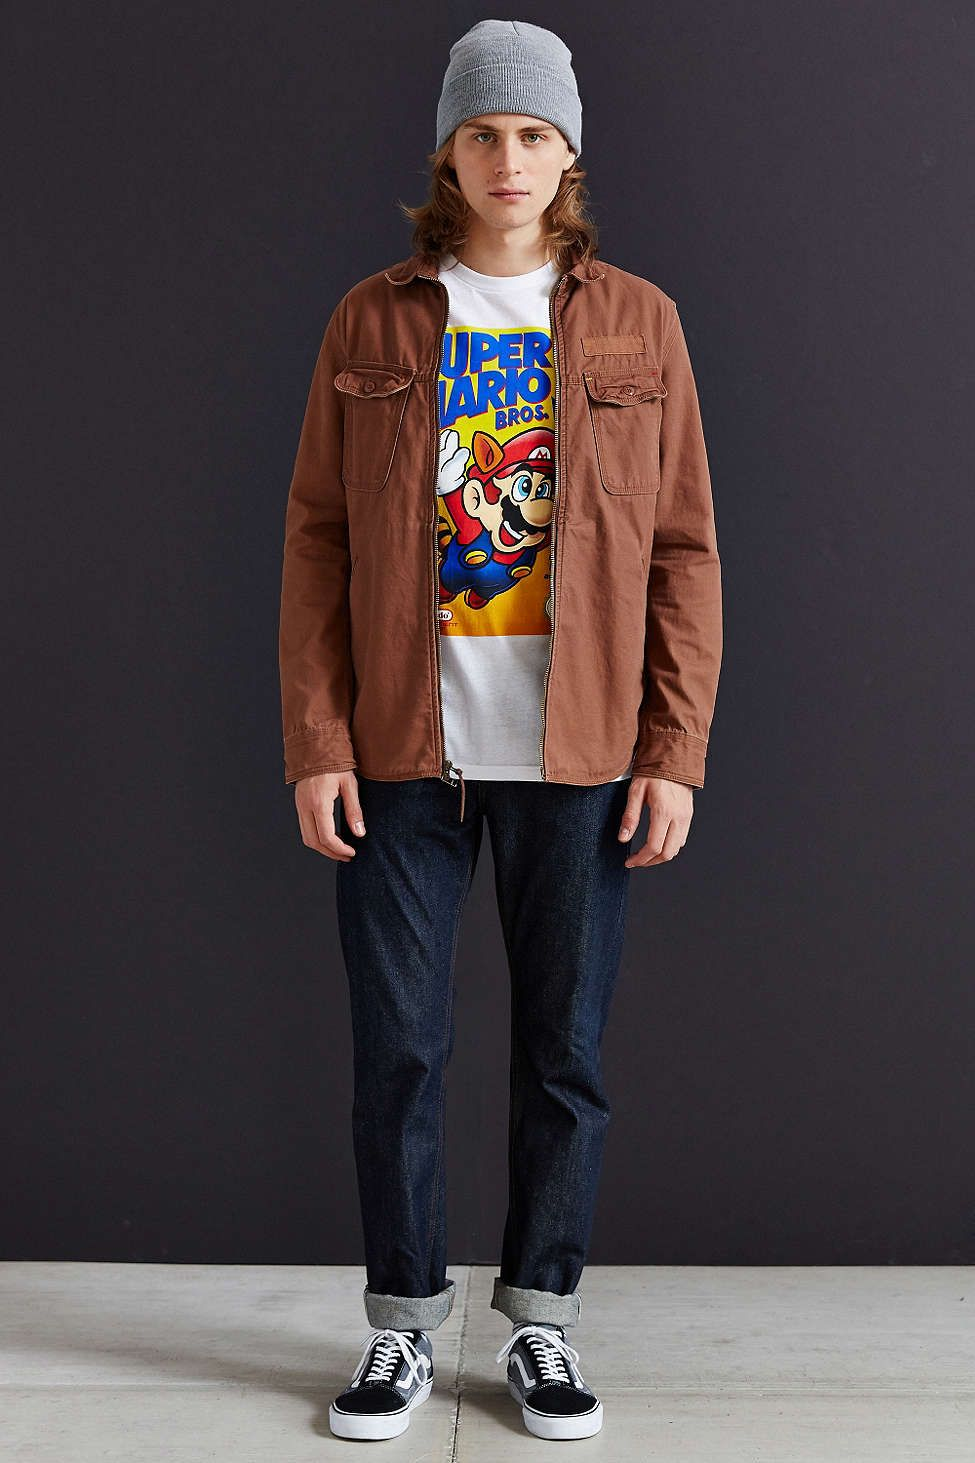 Super Mario 3 Tee - Urban Outfitters